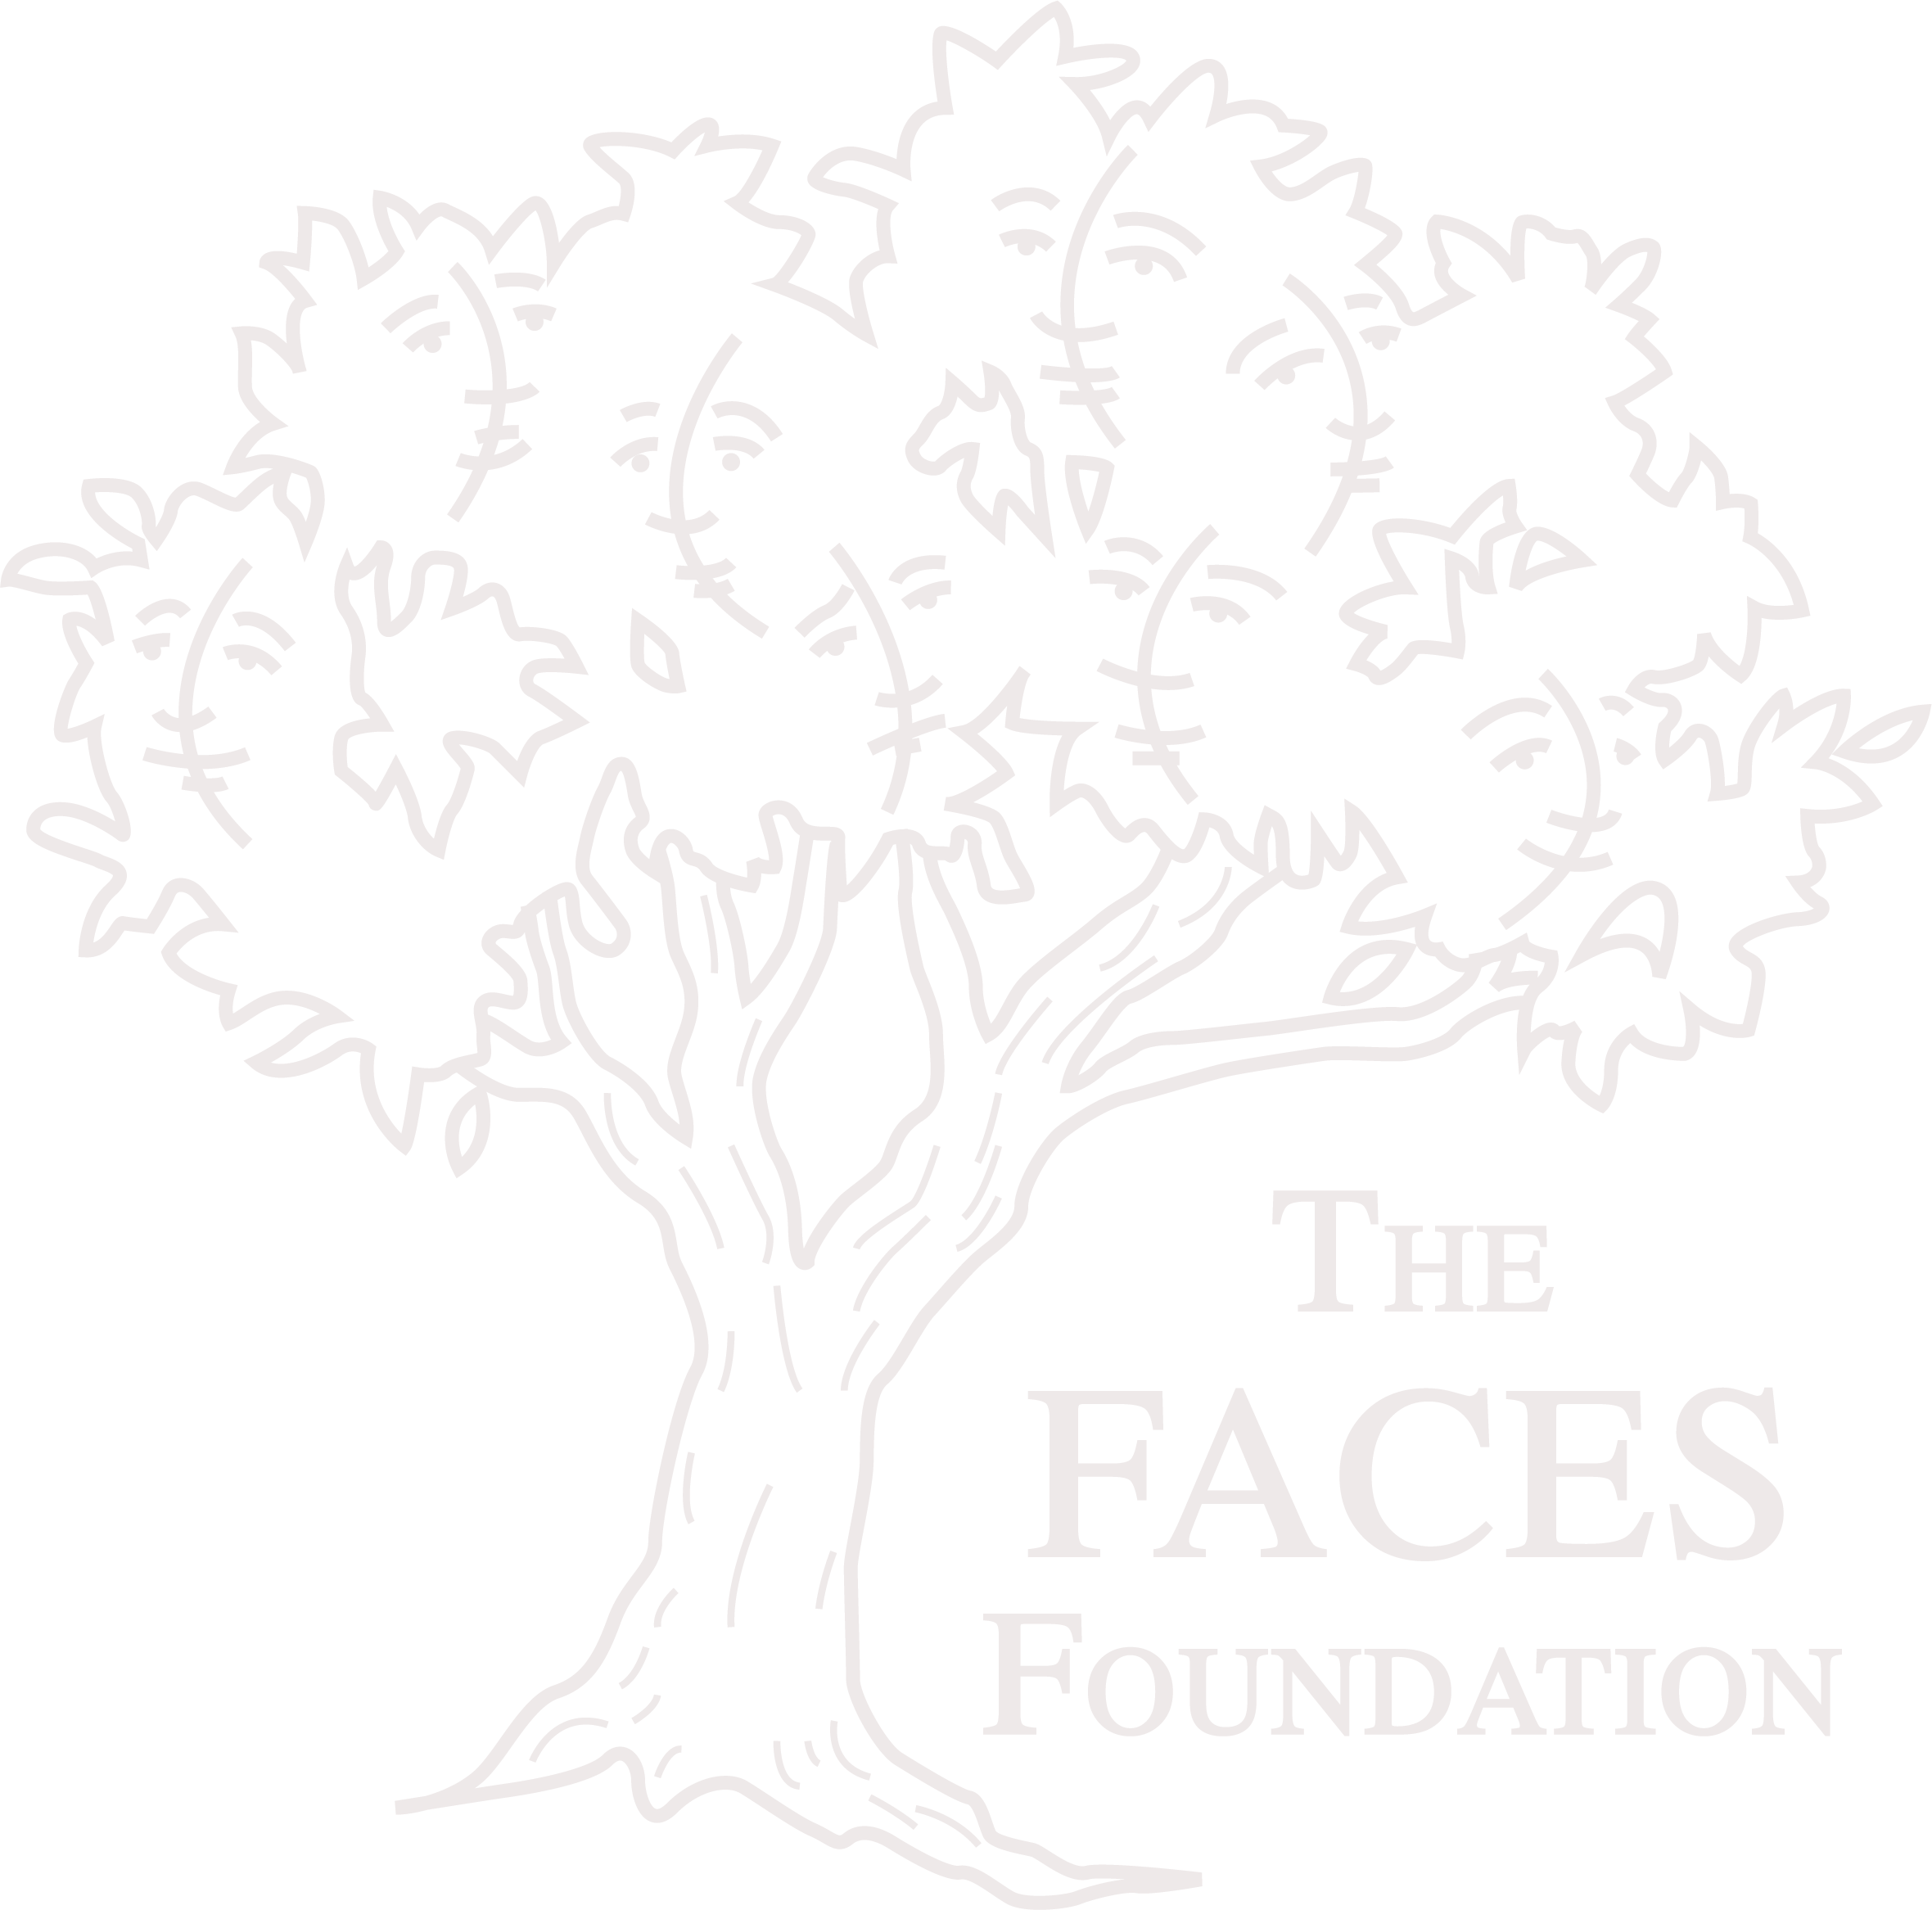 FacesLogo-WithWordsOL_cream.png